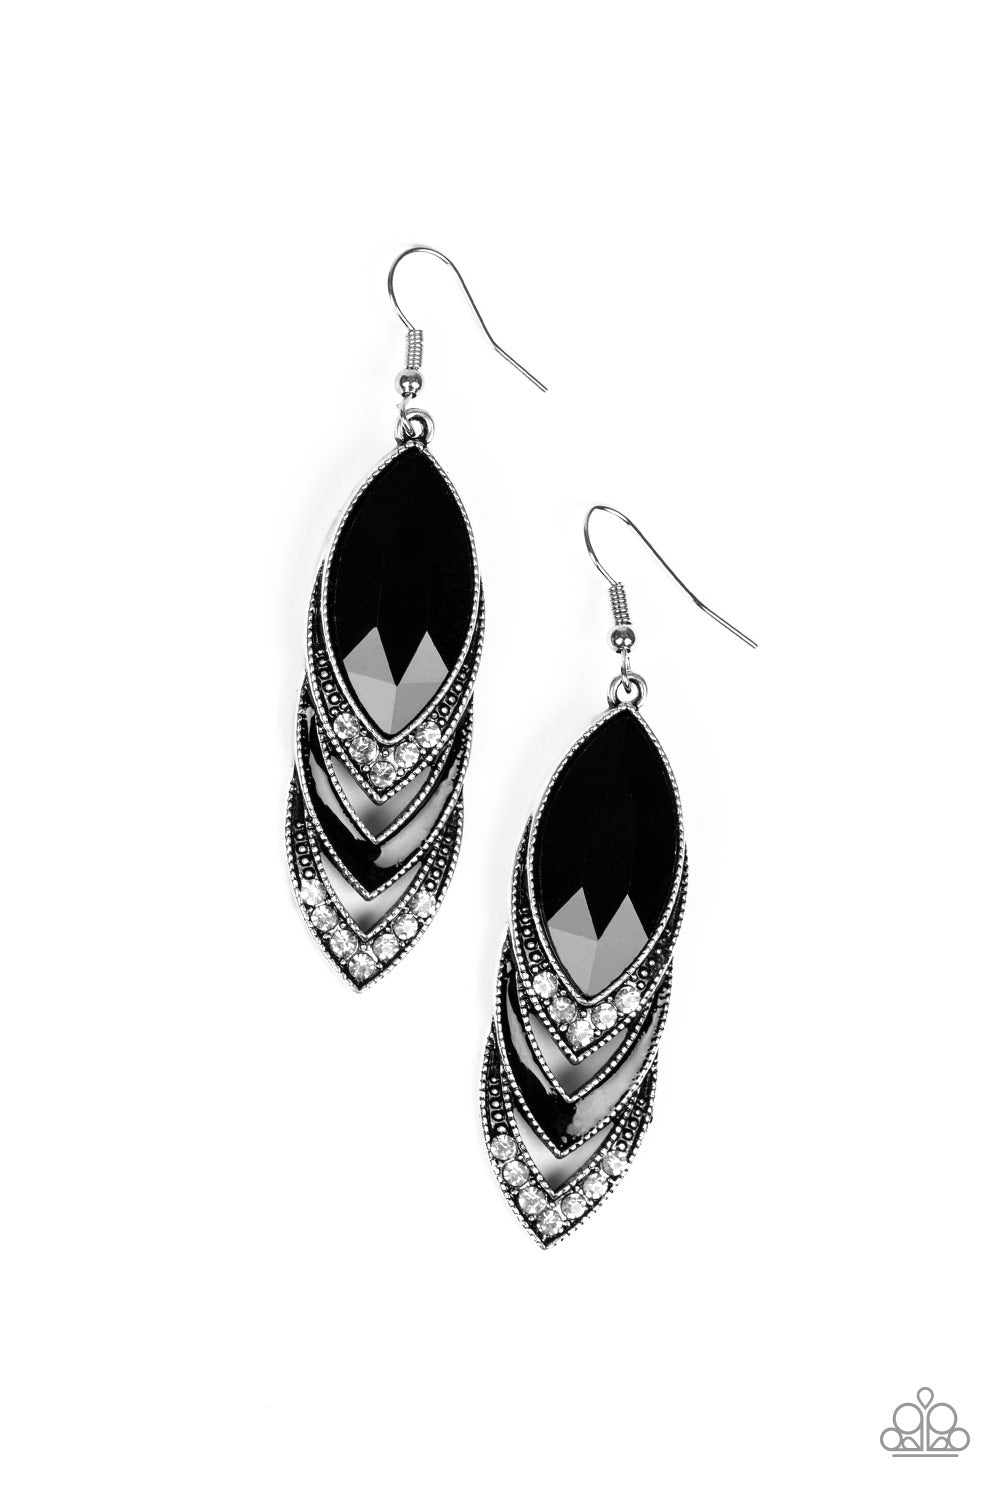 Paparazzi Accessories - High-End Highness - Black Earrings - JMJ Jewelry Collection